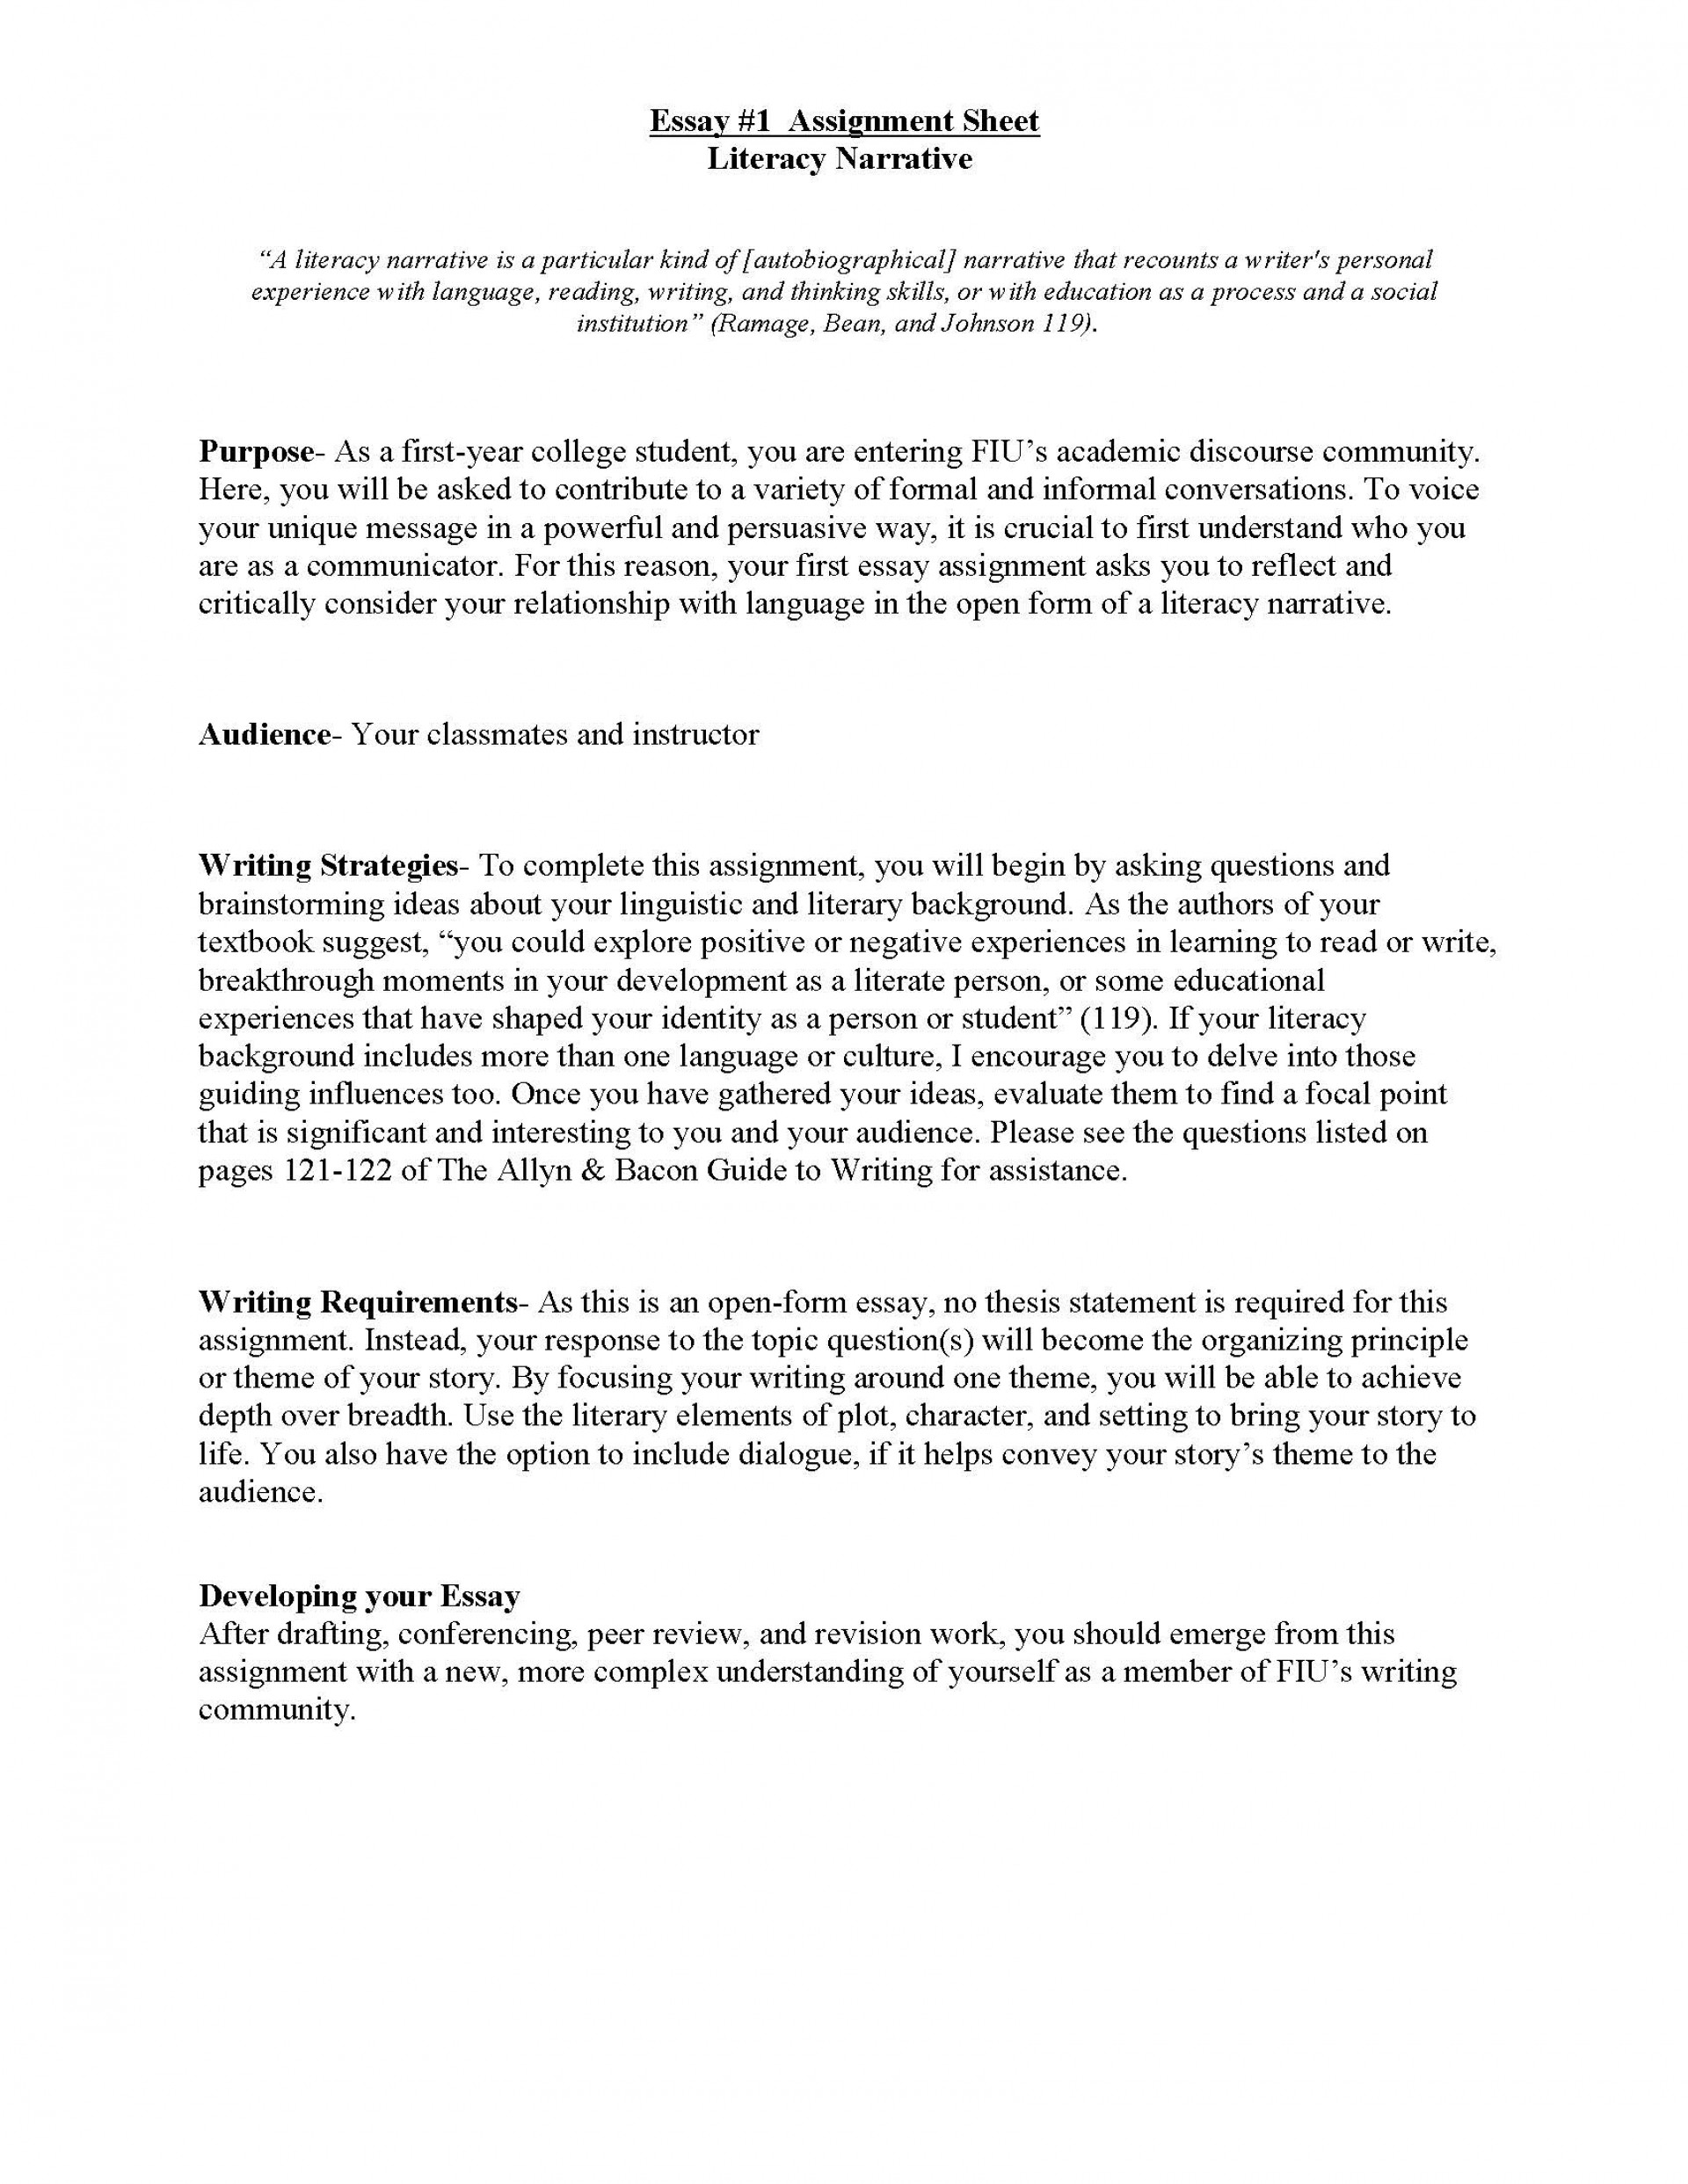 002 Essay Example Literacy Narrative Unit Assignment Spring 2012 Page 1 Awful Information Topics Titles Media Examples 1920